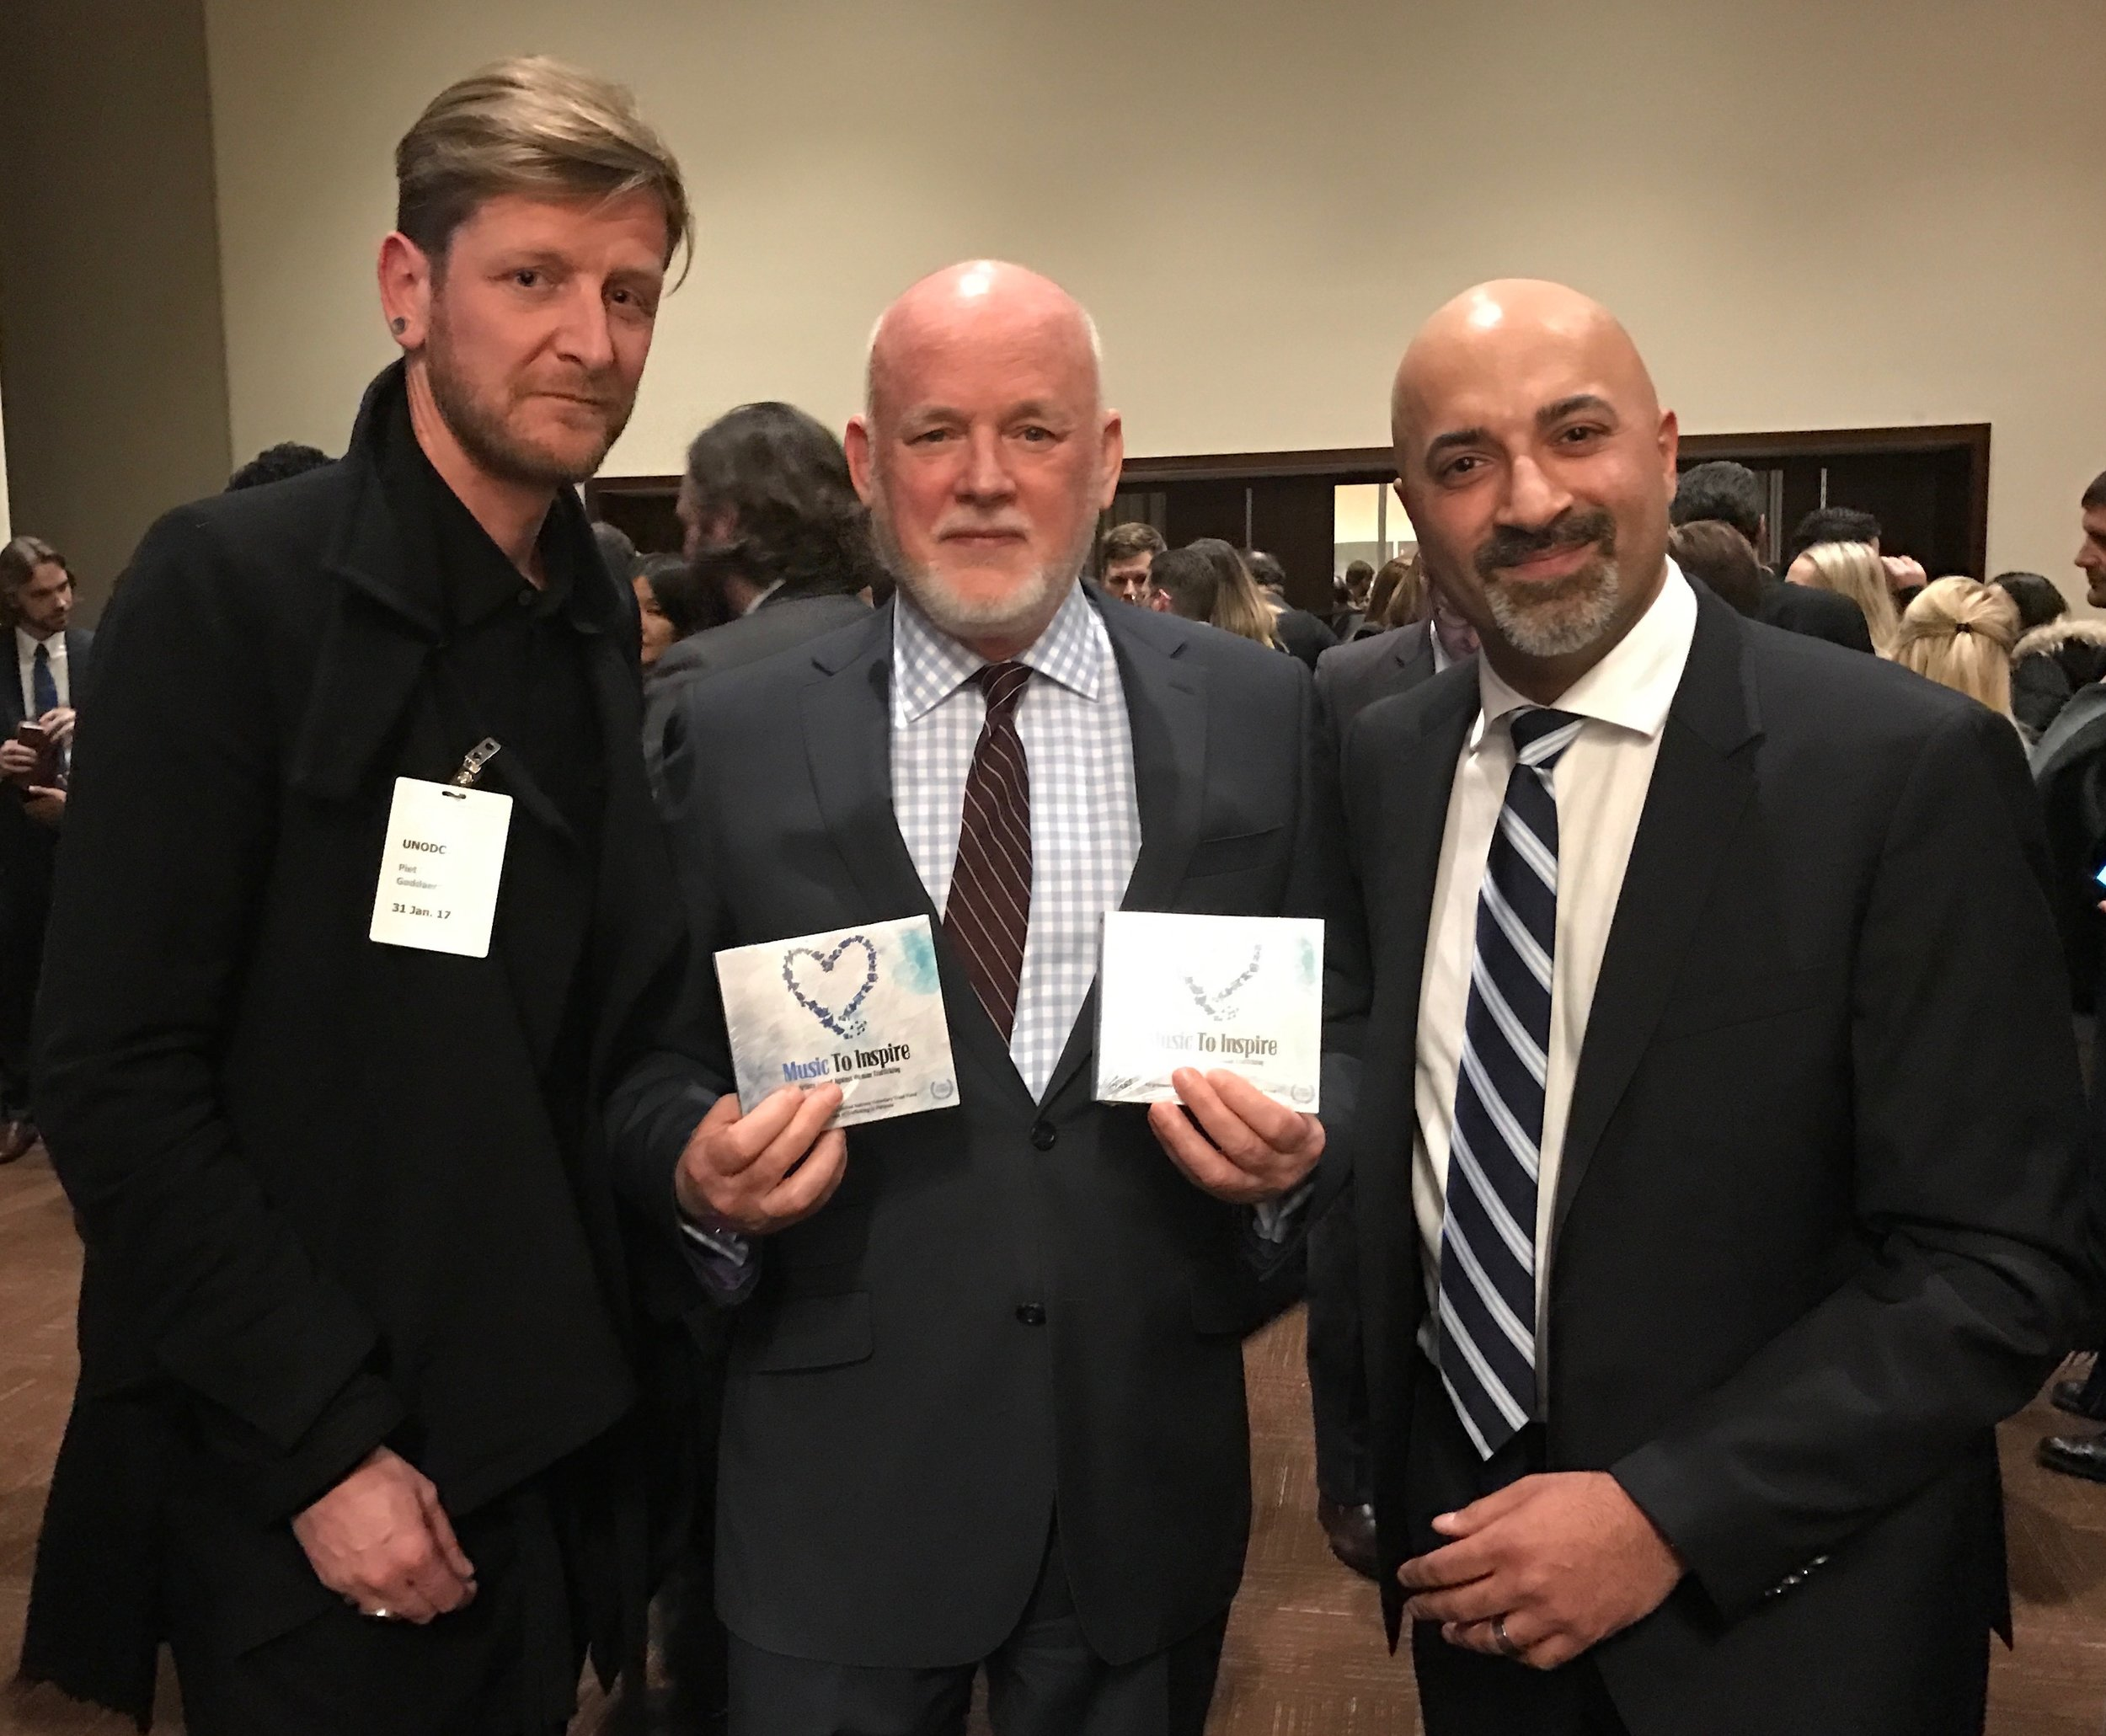 Ozark Henry, H.E. UN General Assembly President Peter Thompson, & Sammy Chand